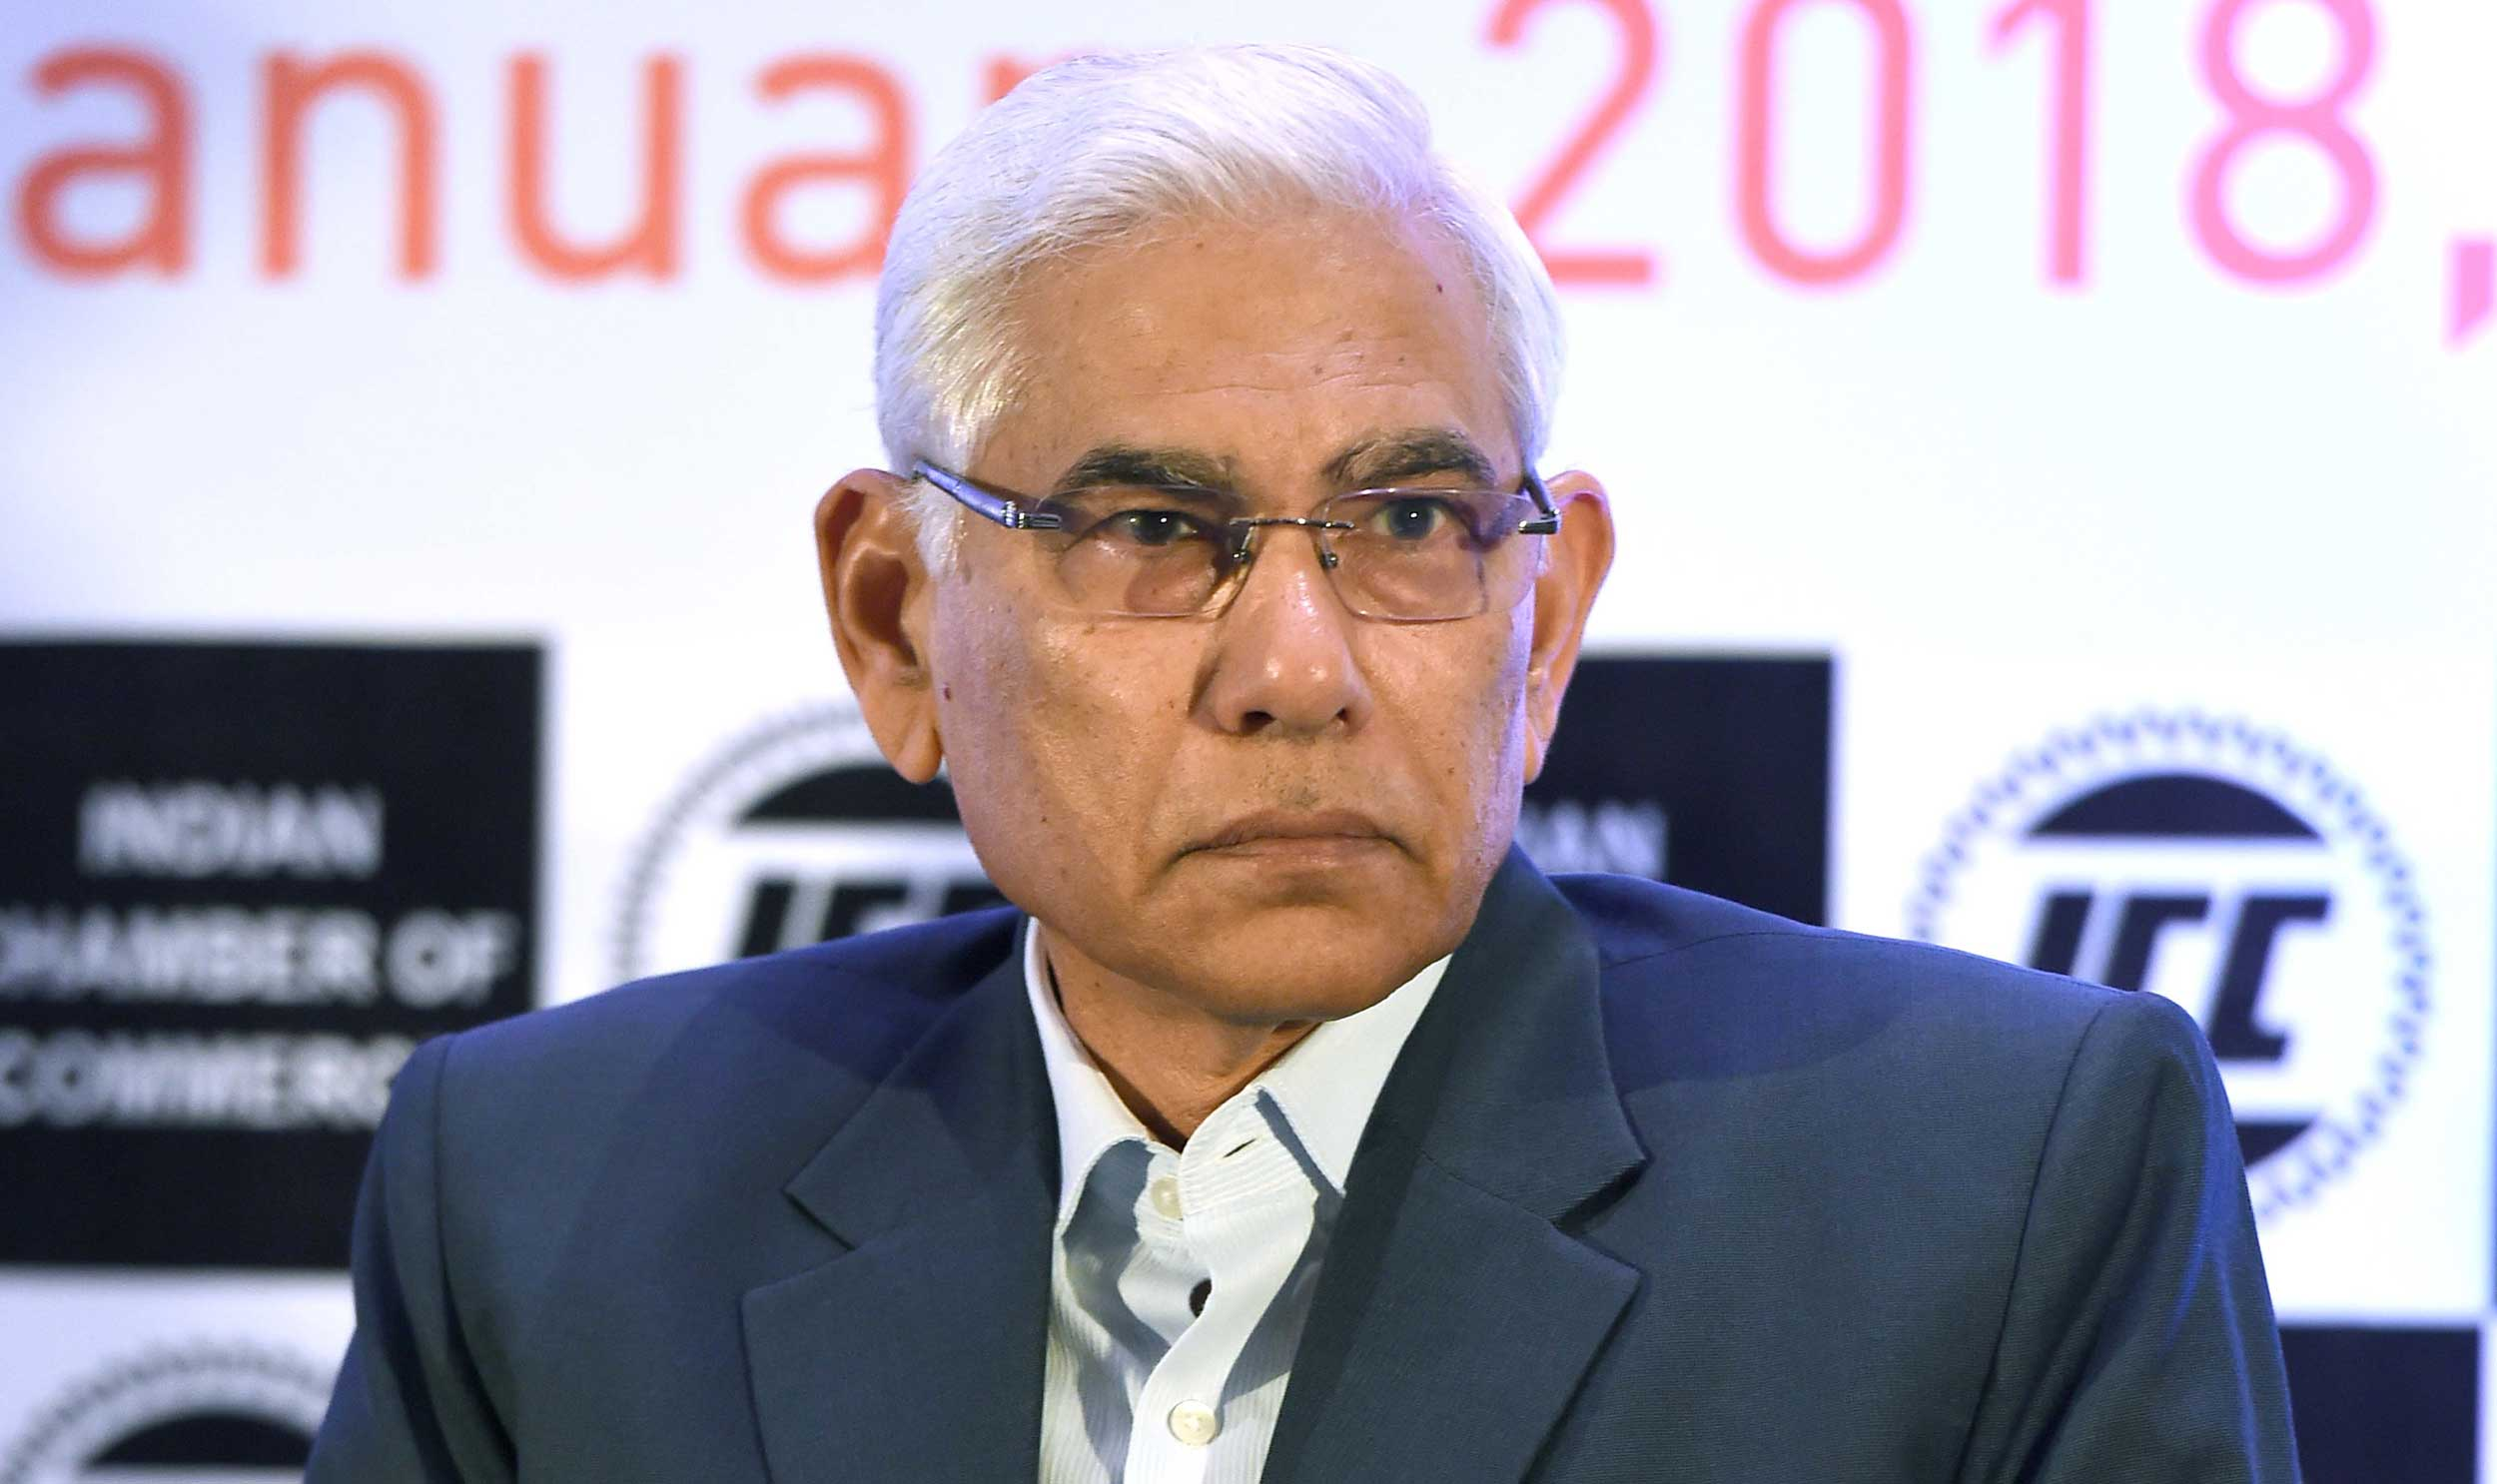 Ahead of the BCCI elections on October 22, the Committee of Administrators chief Vinod Rai (in picture) has said that non-compliant state units like Tamil Nadu and Haryana risk losing their voting rights in BCCI though their cricketing activities will not be affected.